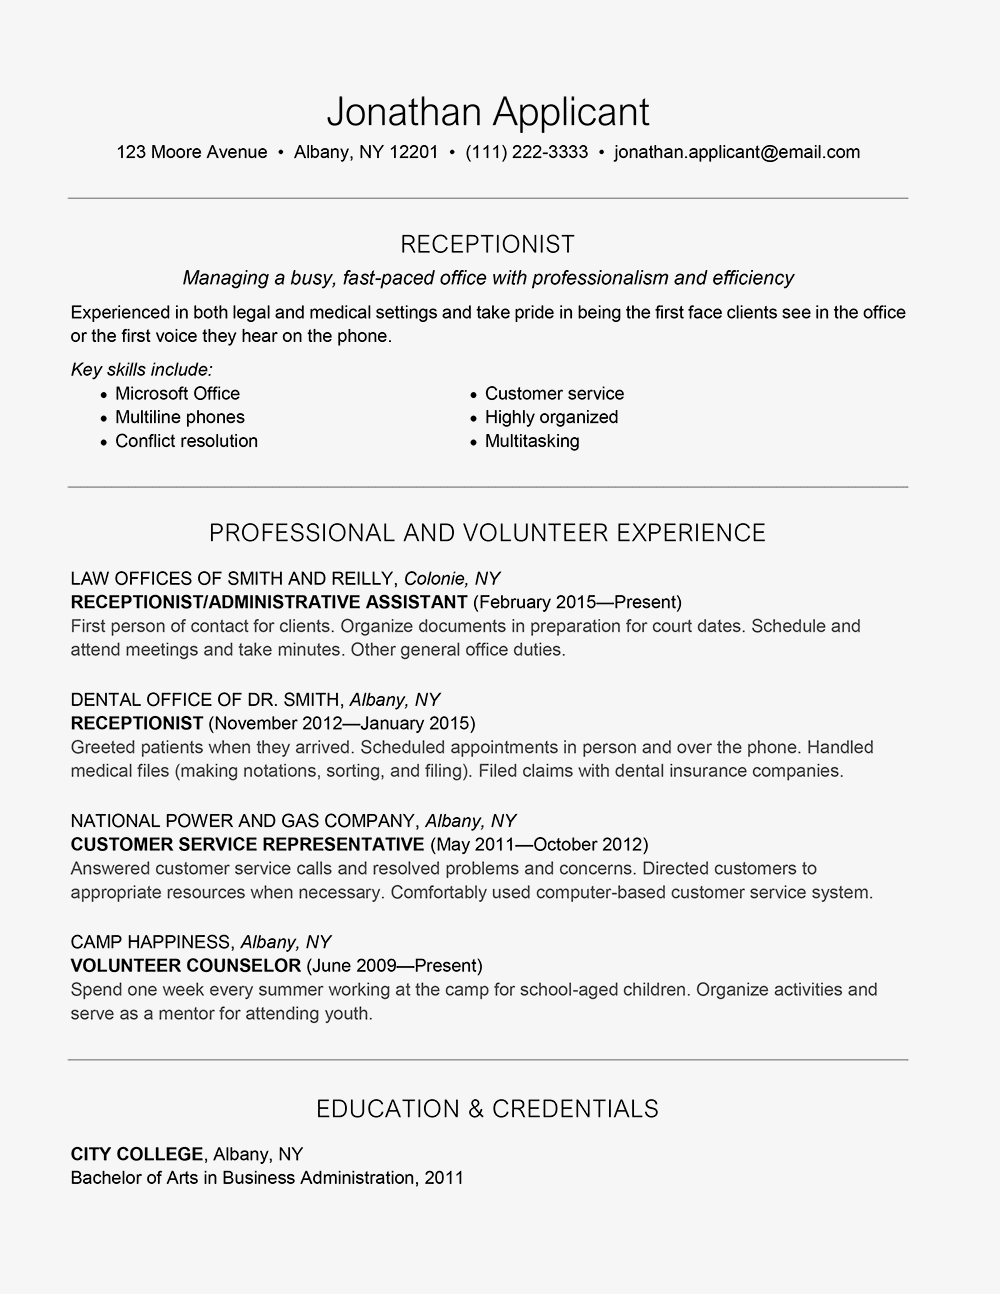 Direct Care Worker Job Duties - Receptionist Skills Job Description and Resume Example